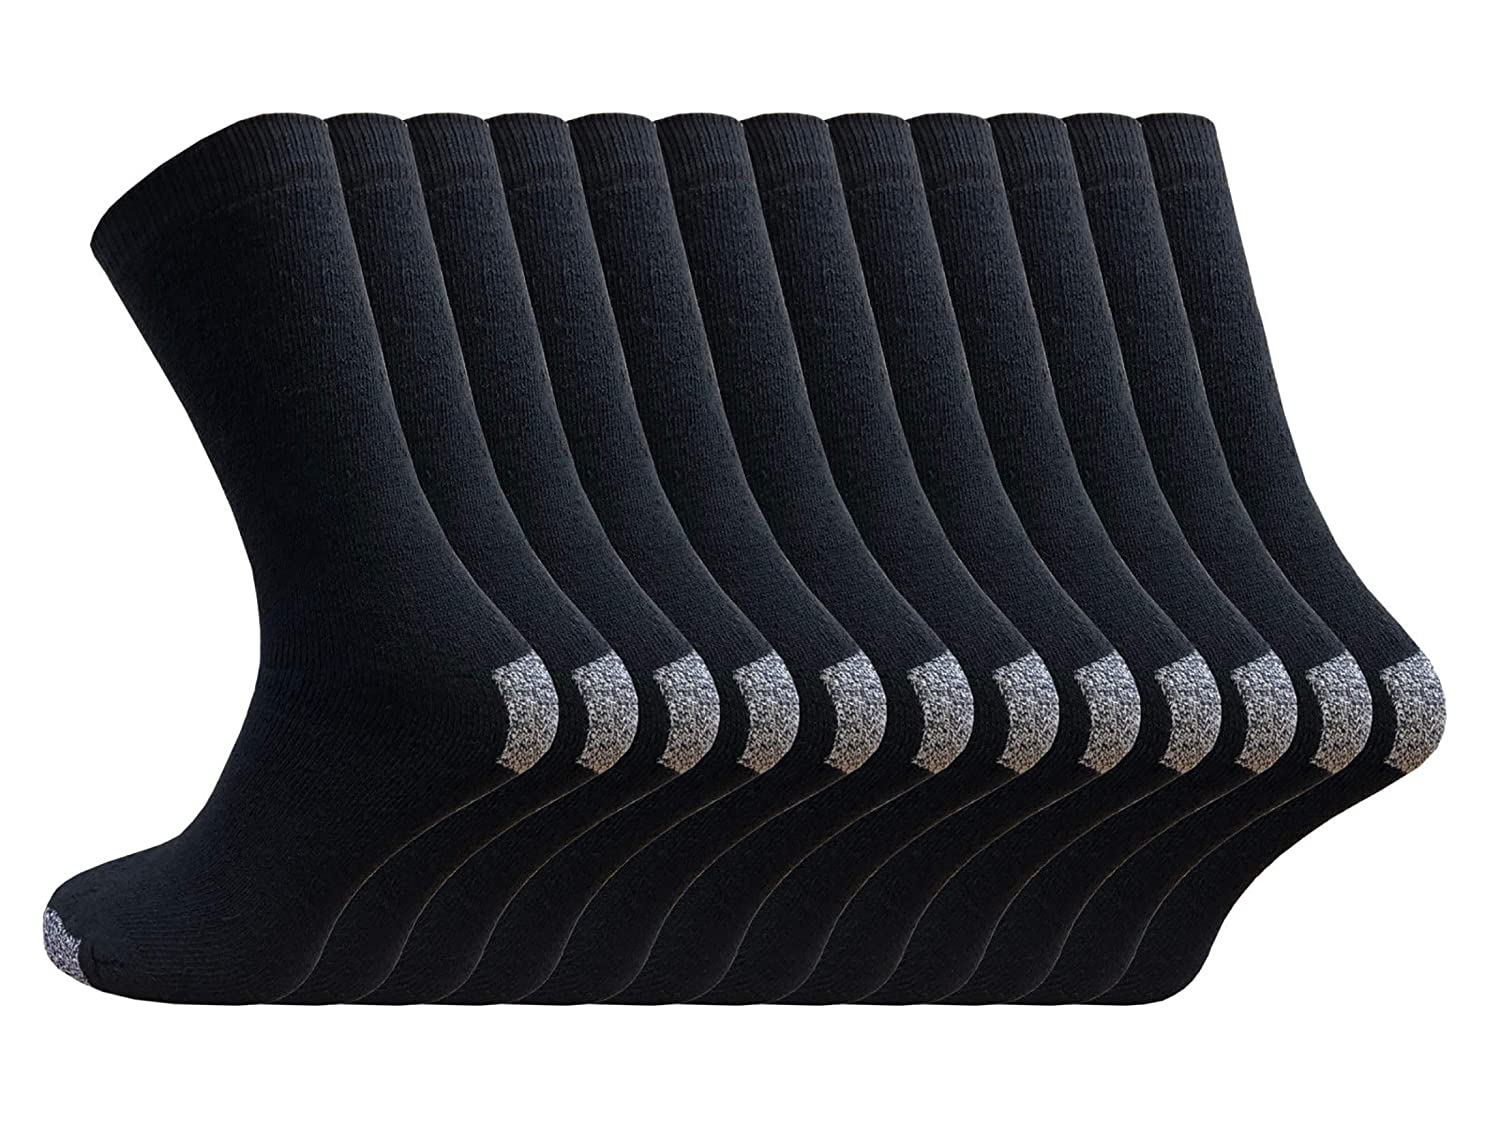 12 pairs Mens Hard Wearing Work Socks - Reinforced Heel and Toe - Safety Boot Socks - Excellent Quality - Warmth and All Day Comfort